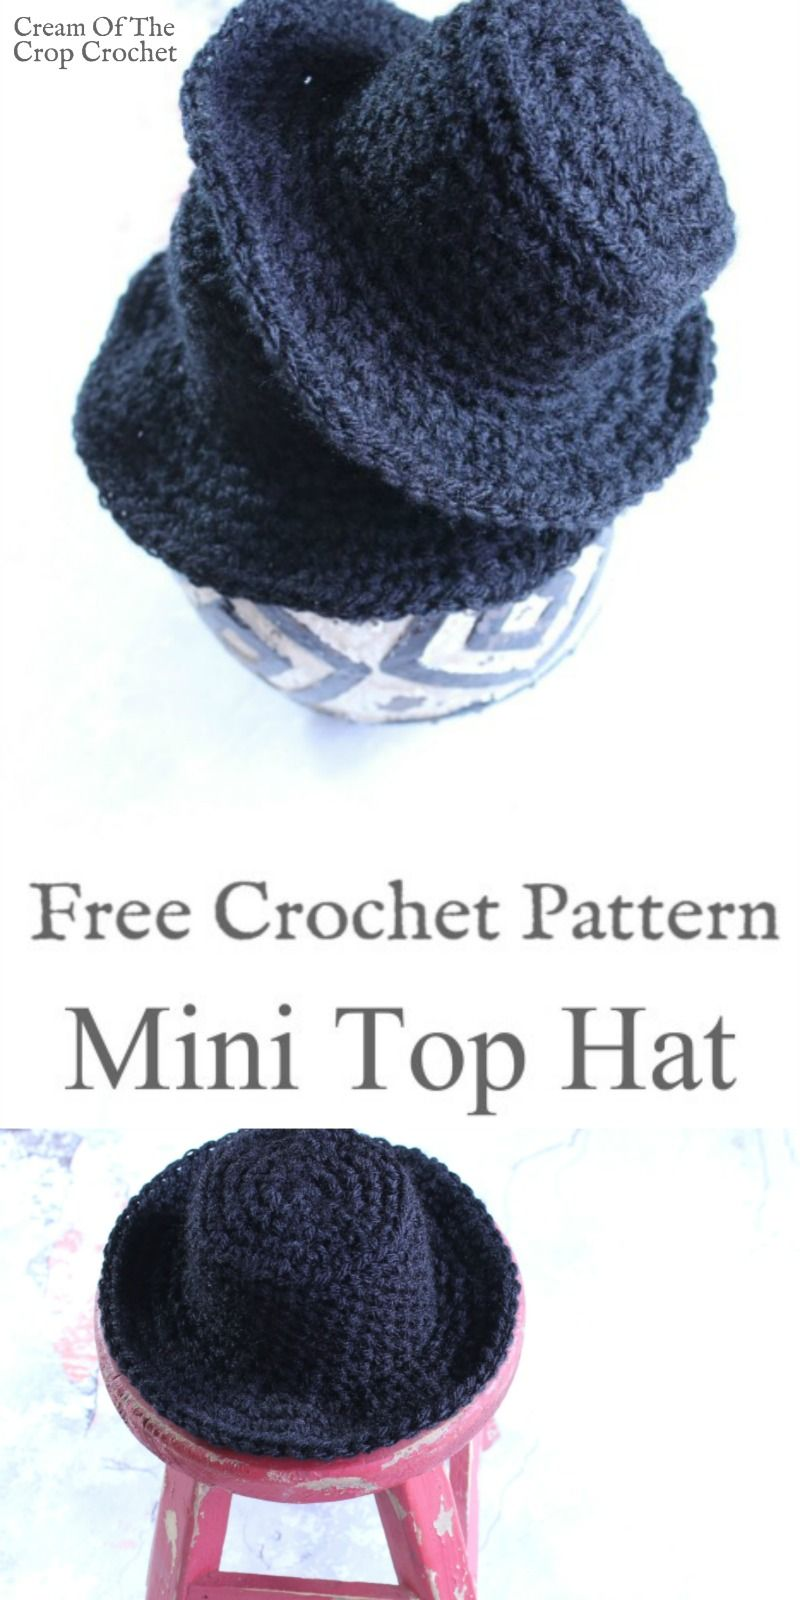 Mini Top Hat Crochet Pattern  beca37c2d64